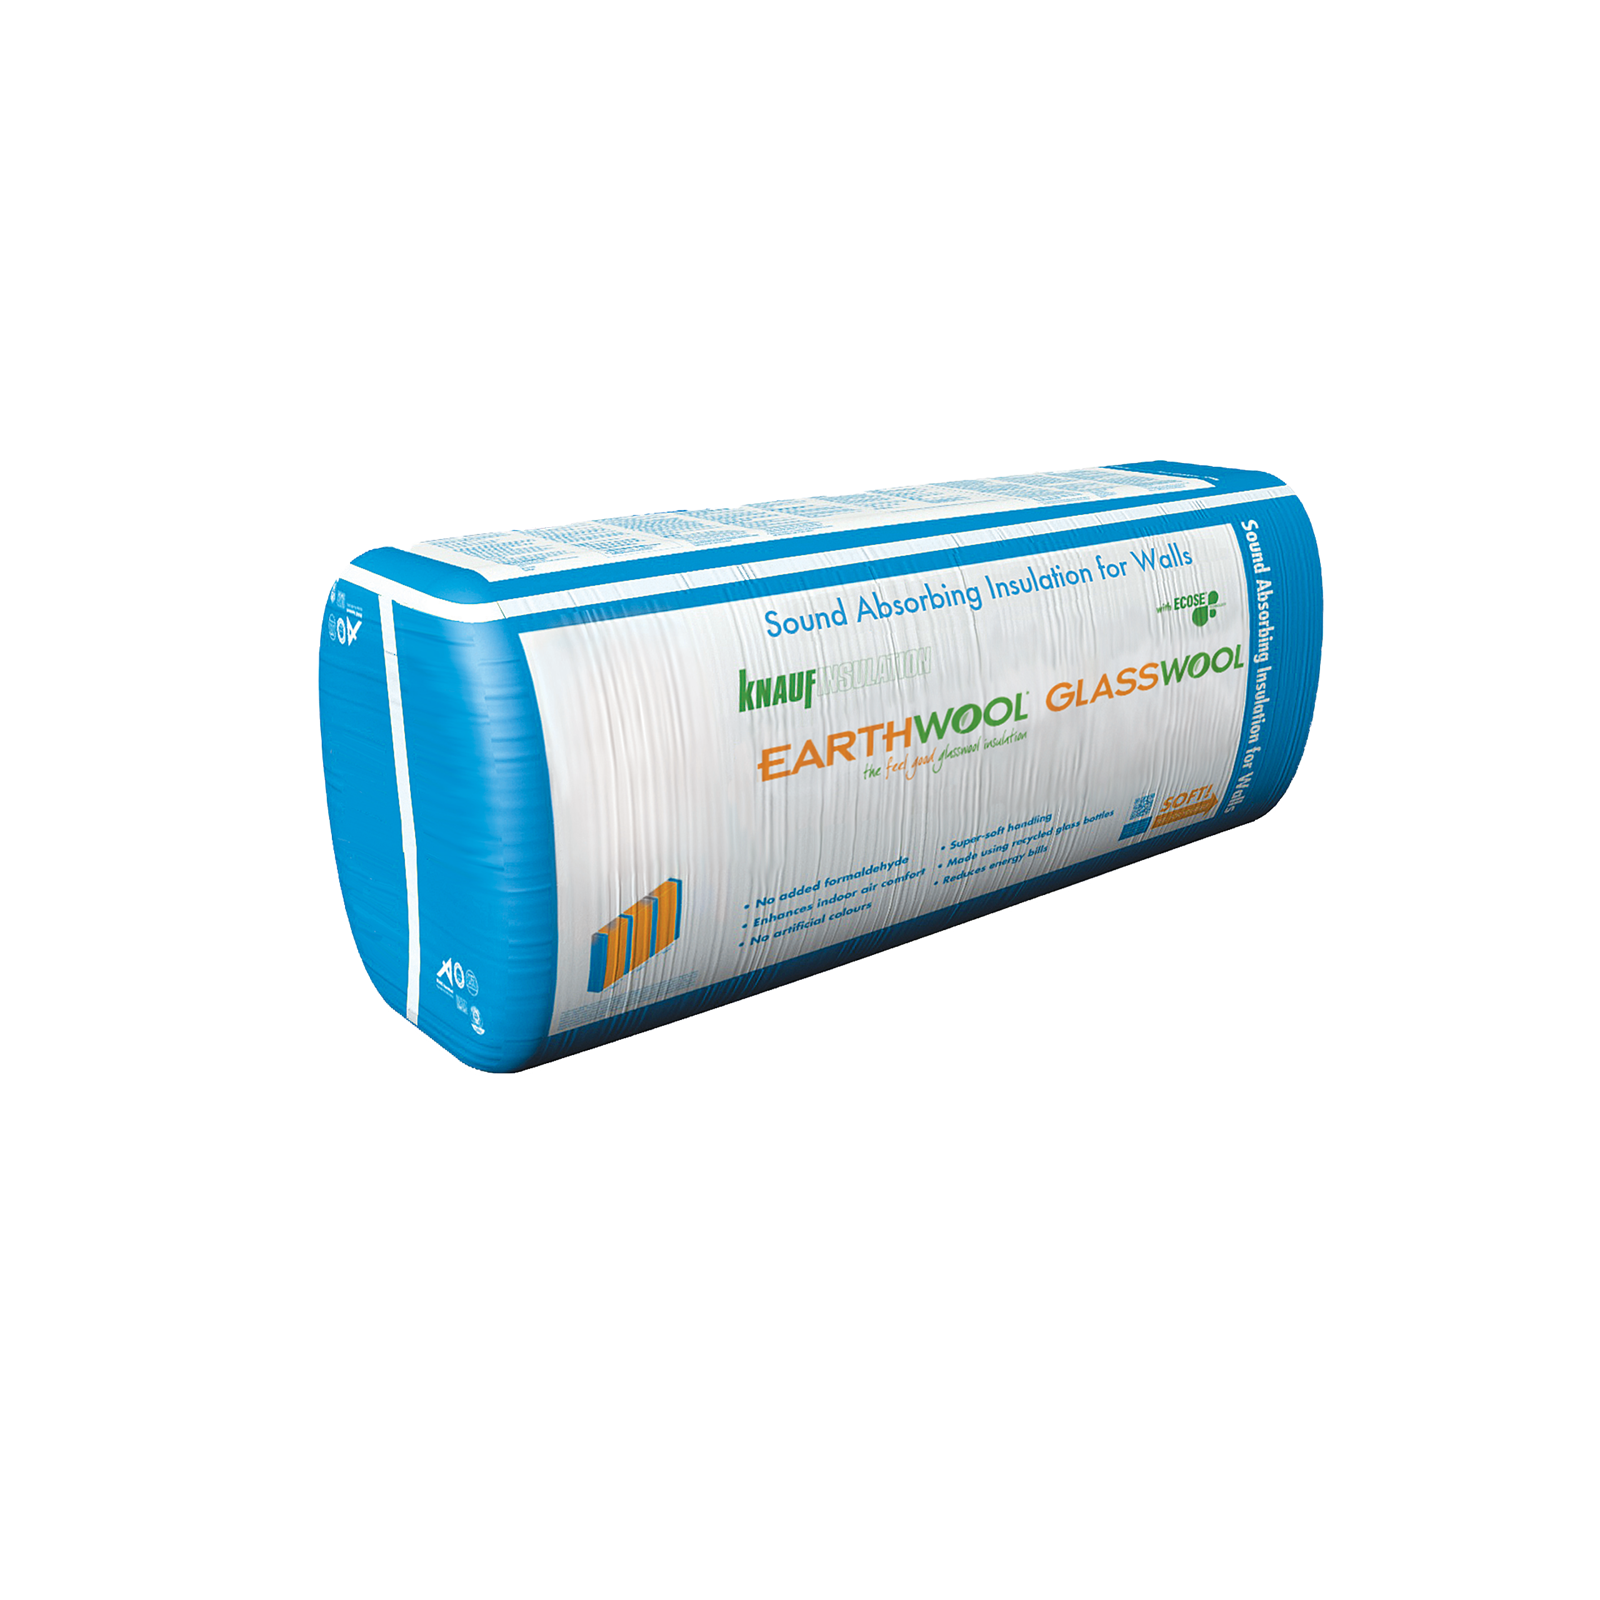 Earthwool glasswool R1.3 50mm x 600mm x 2700mm 32.40m² Acoustic Wall Insulation Batt - Pack Of 20